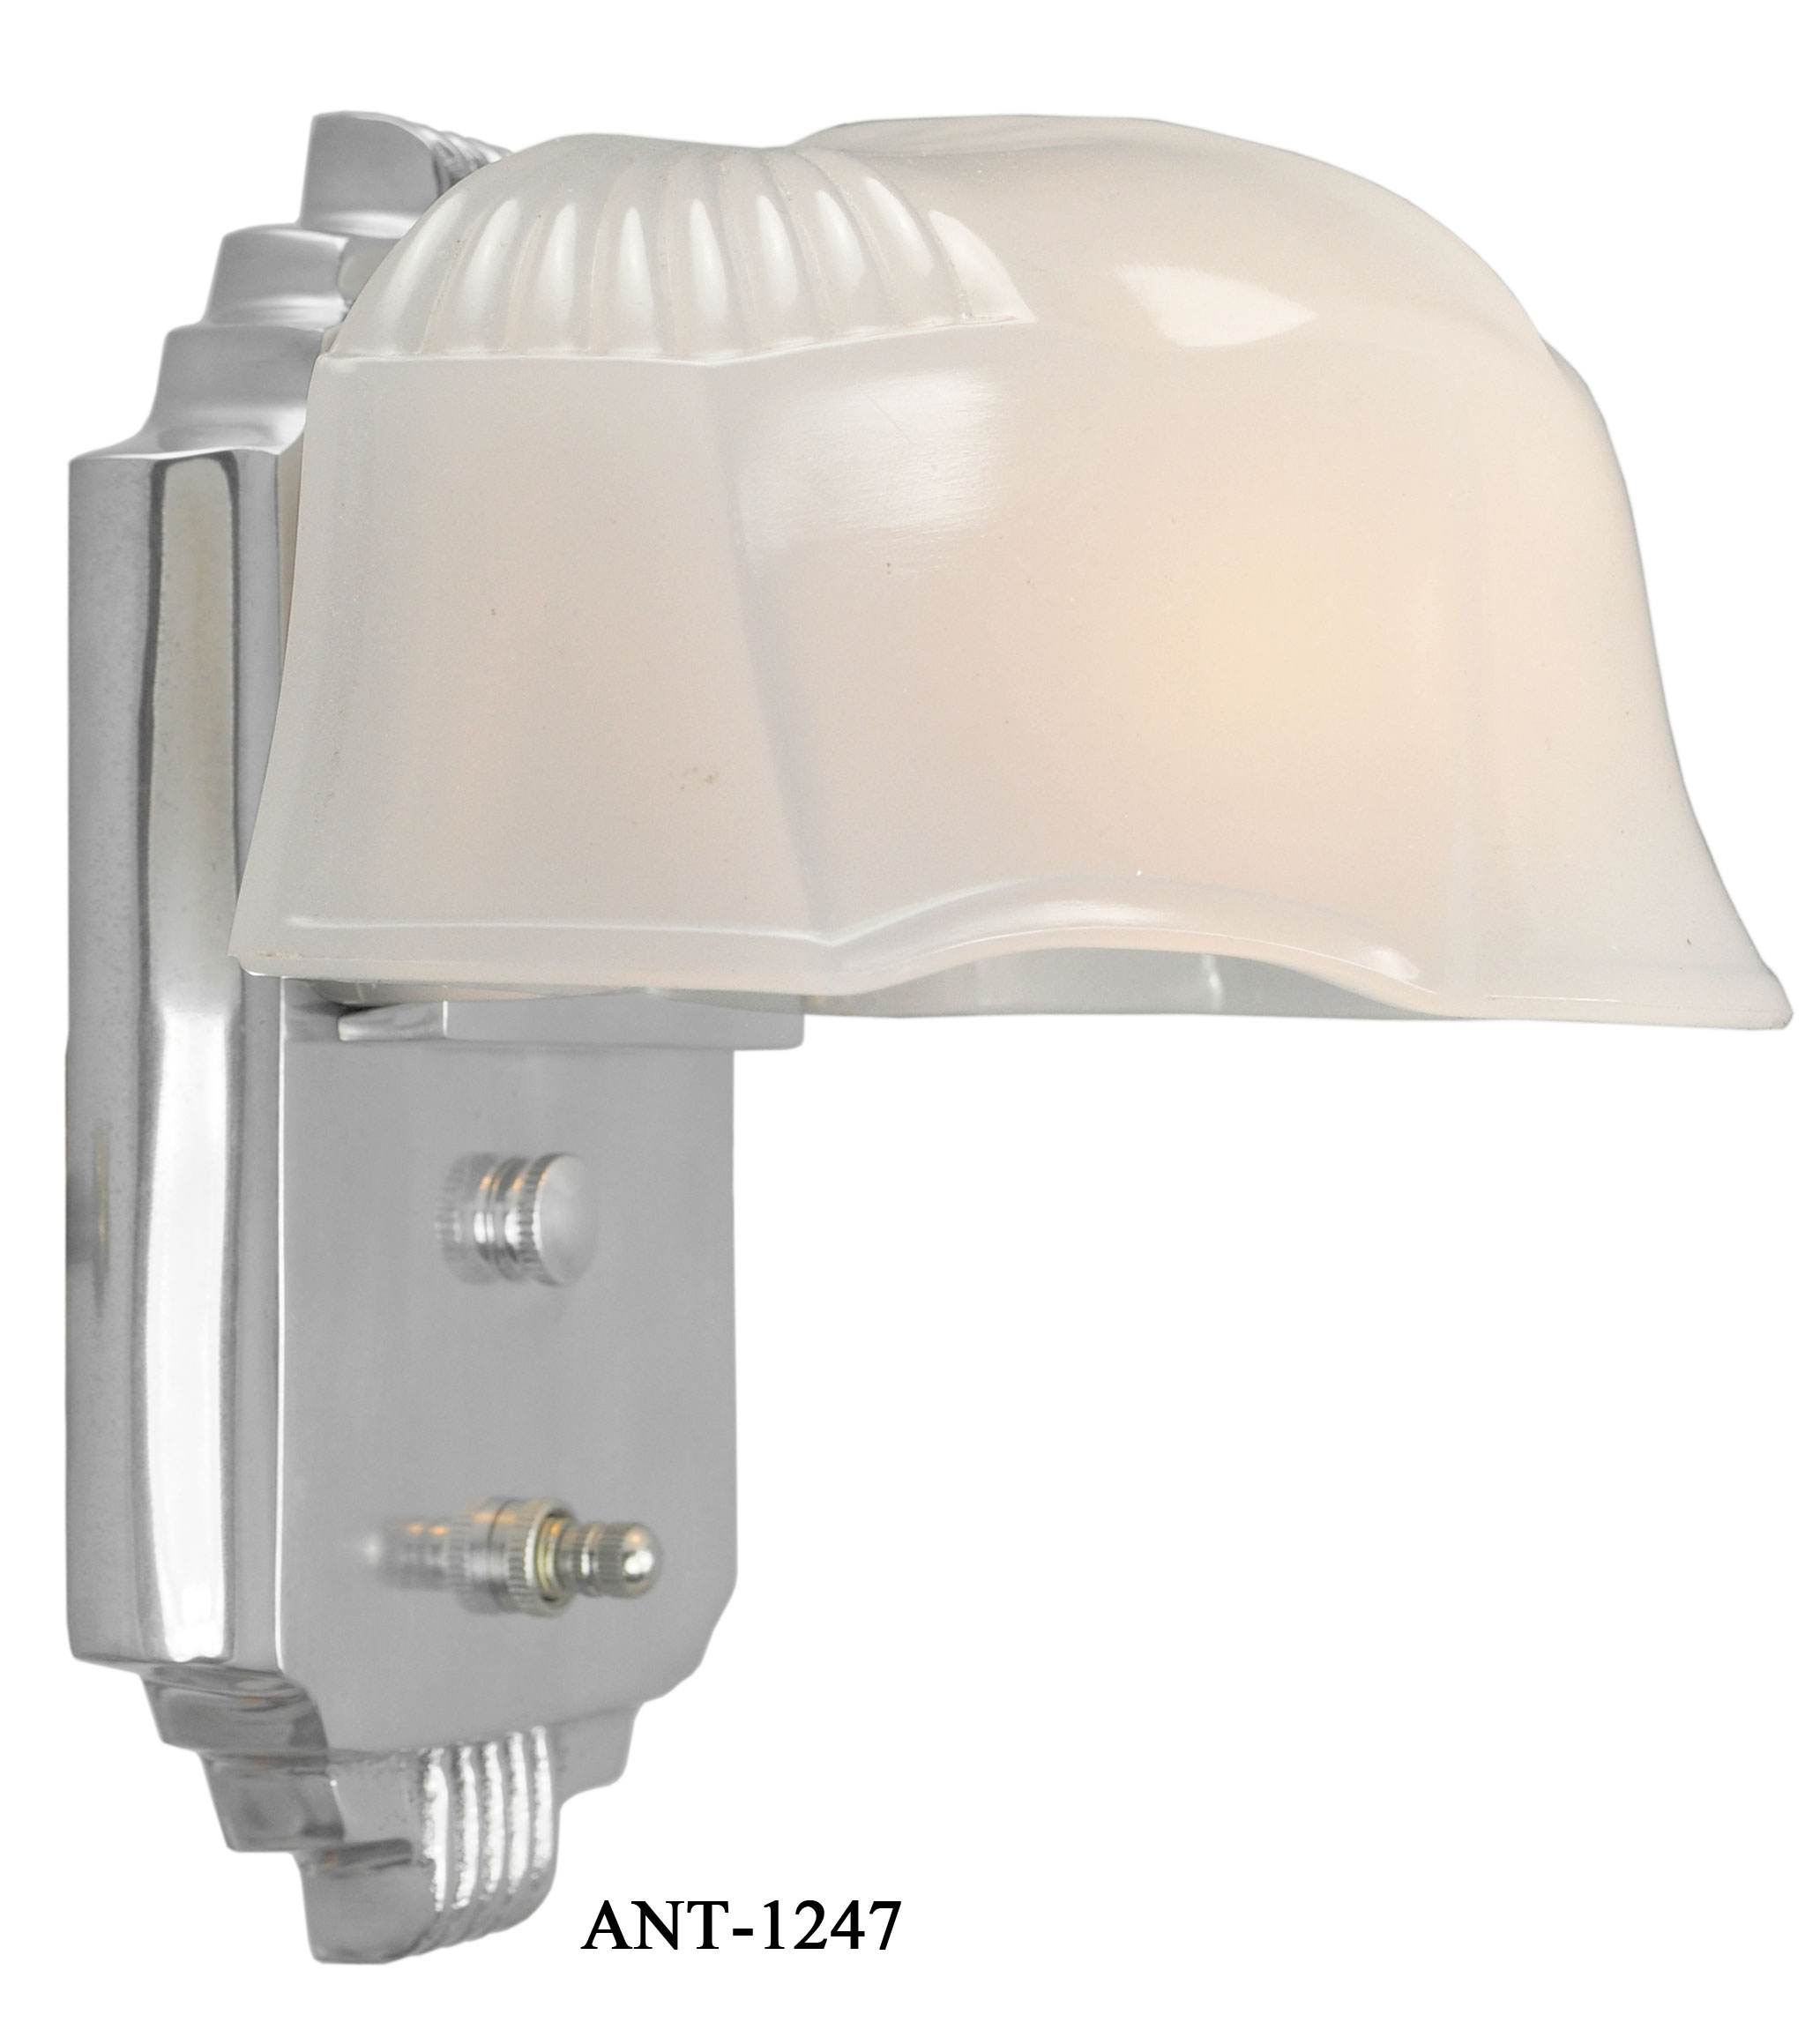 Vintage Hardware U0026 Lighting   Art Deco Streamline Wall Sconce Light Fixture  (ANT 1247)